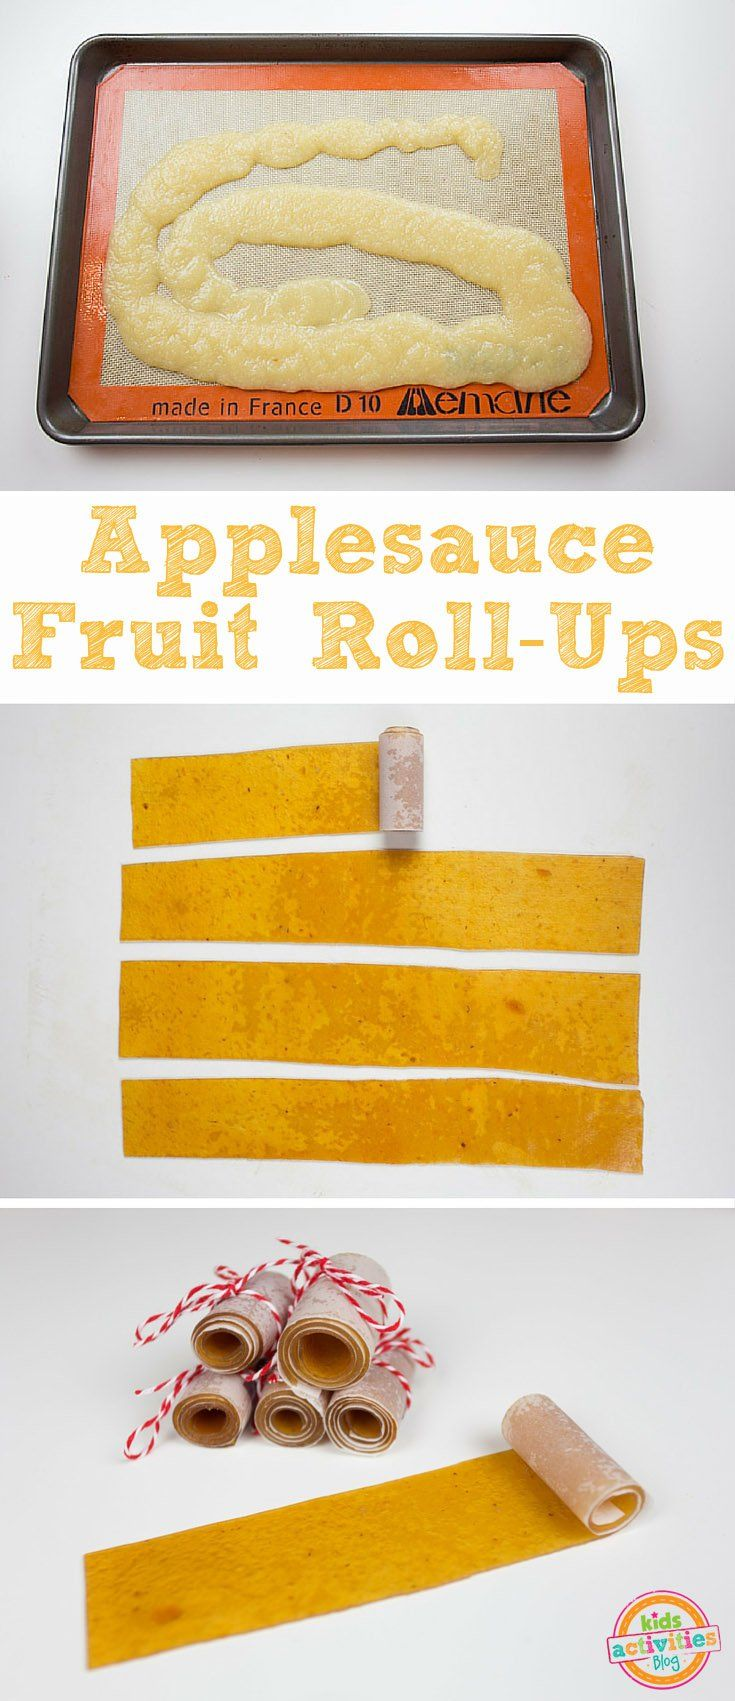 You just need one-ingredient to make Applesauce Fruit Roll-Ups. Easy, delicious, and kids love 'em! Perfect snack for school, on the road, or just because.